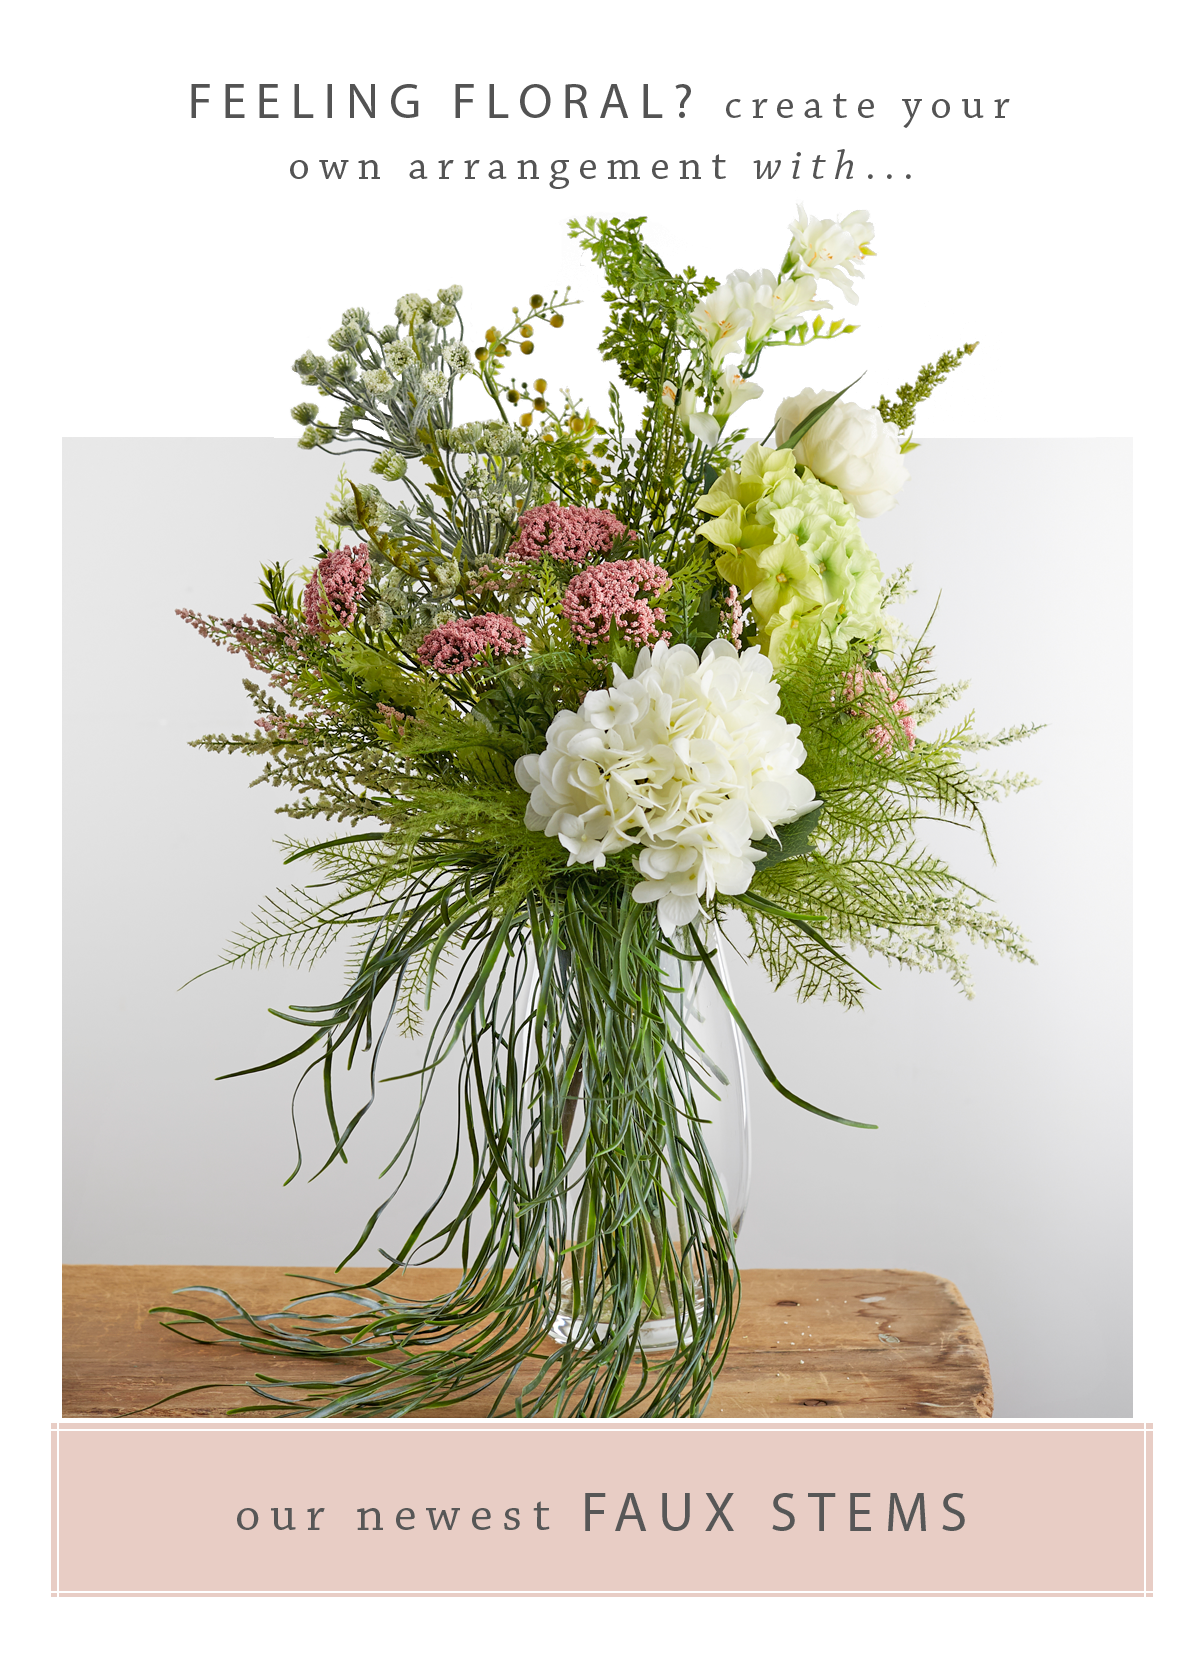 Feeling Floral? Create your own arrangement with...our newest faux stems